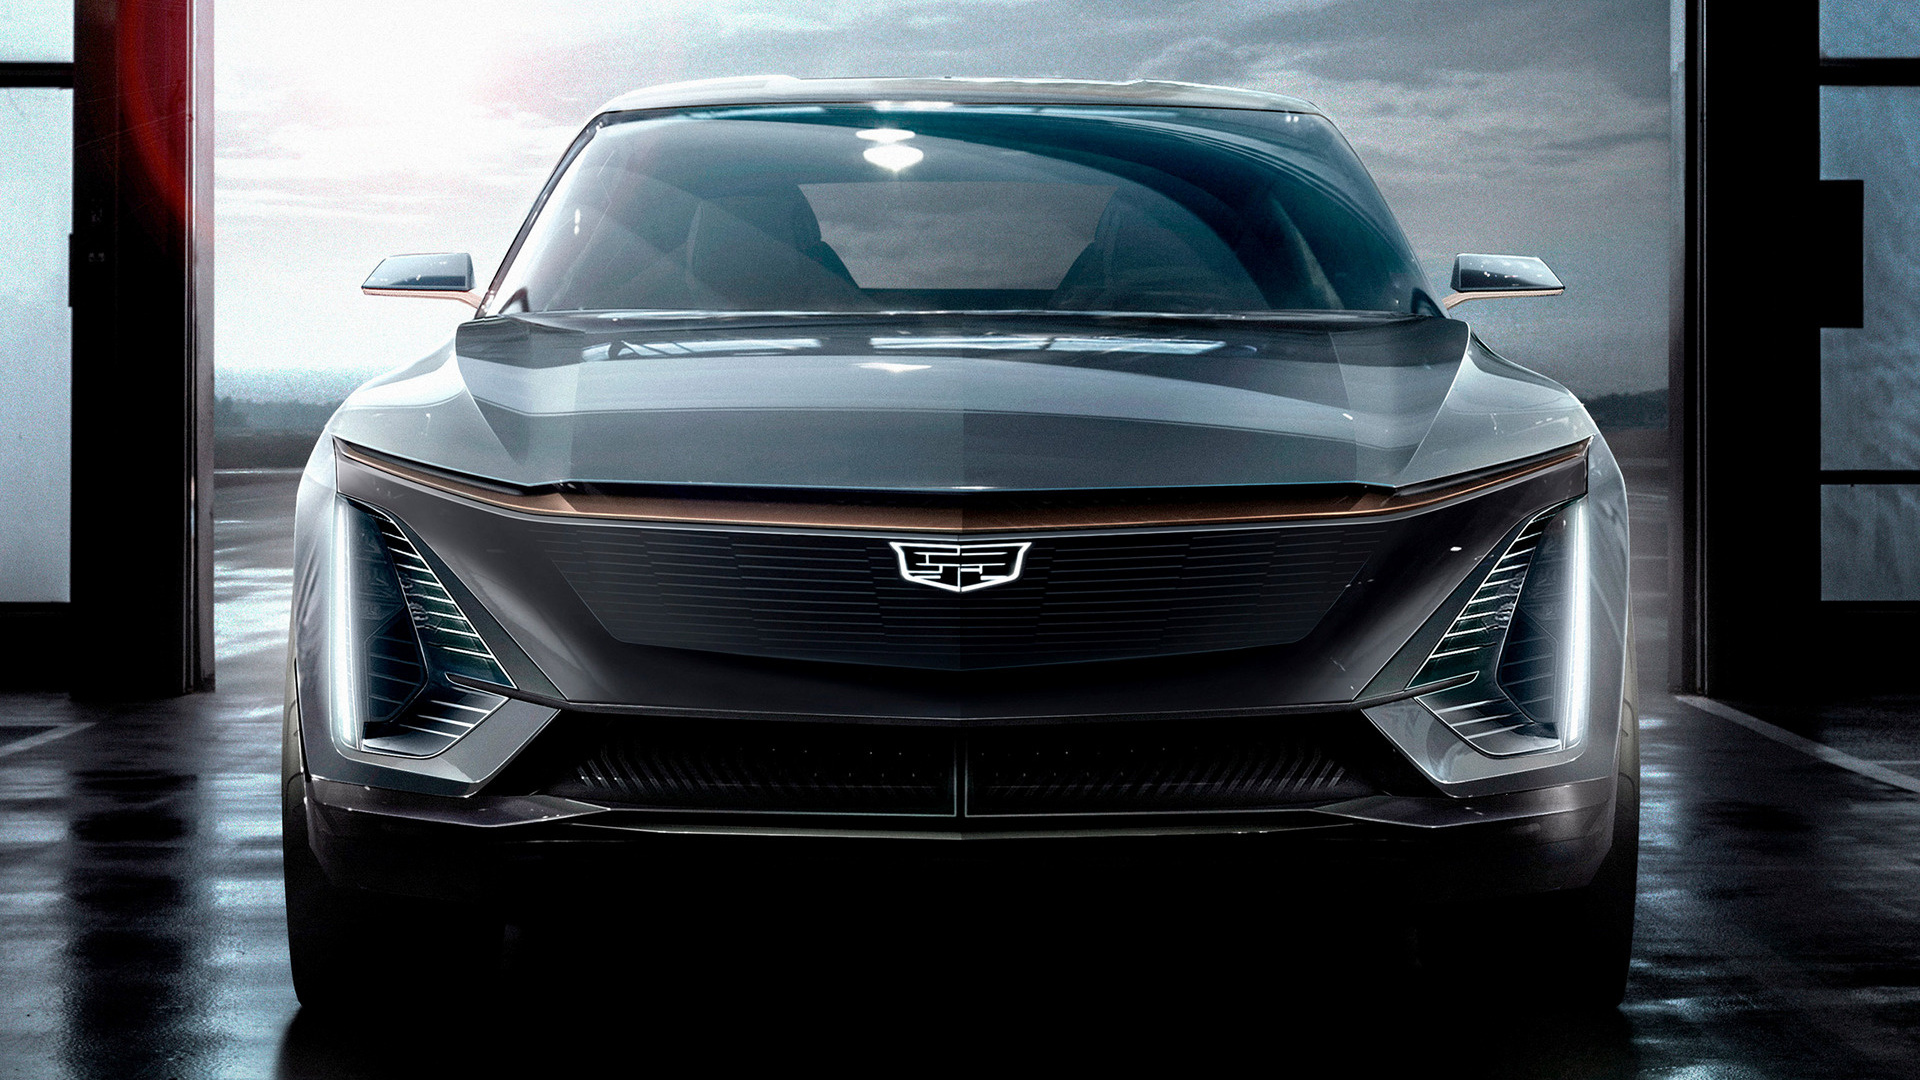 2019 Cadillac EV Concept - Wallpapers and HD Images | Car ...